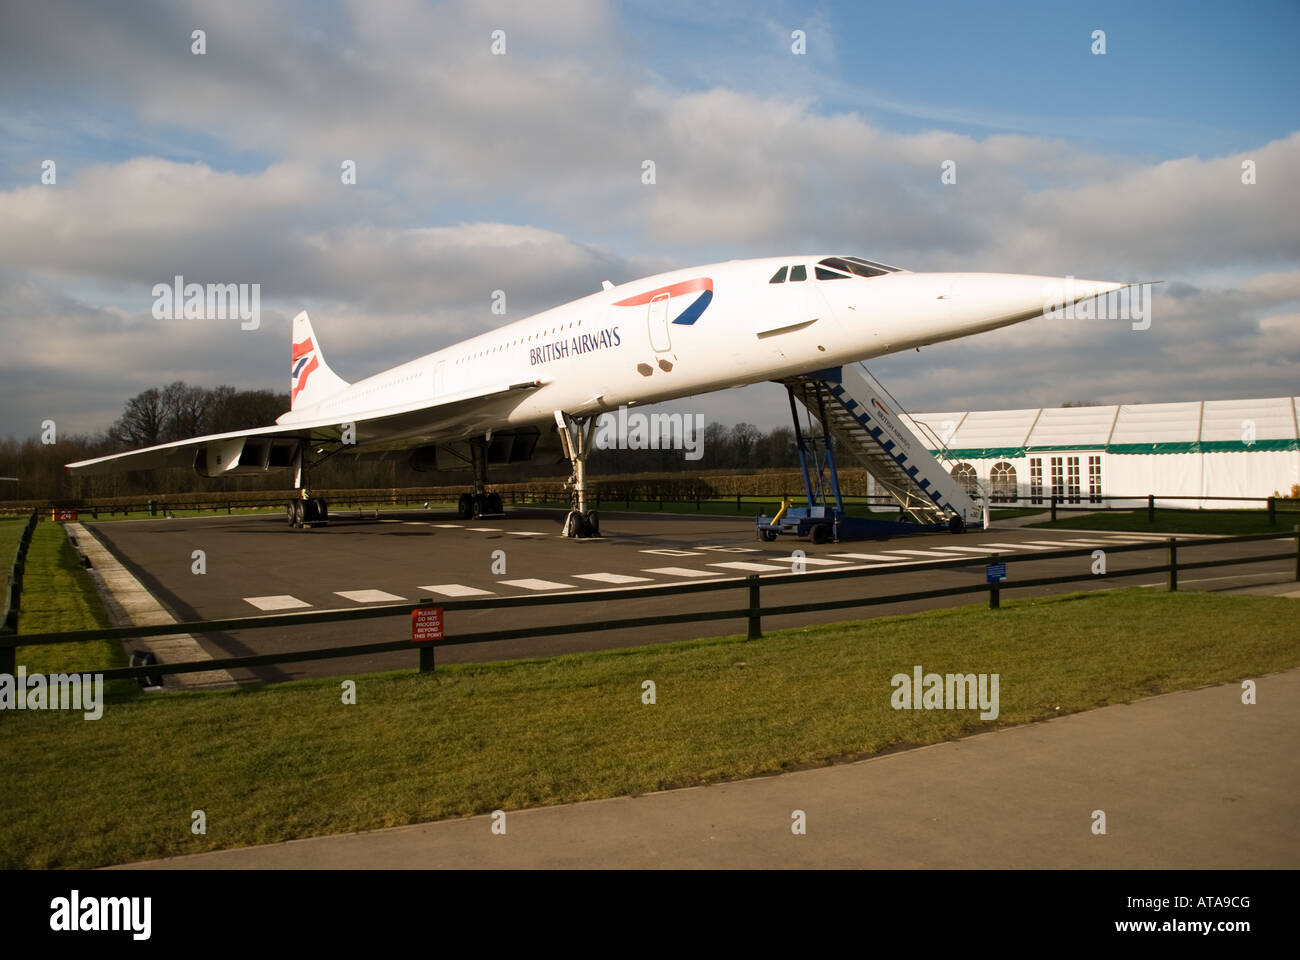 Concorde G-BOAC on display at Manchester Airport viewing area before it was enclosed with a hangar Stock Photo